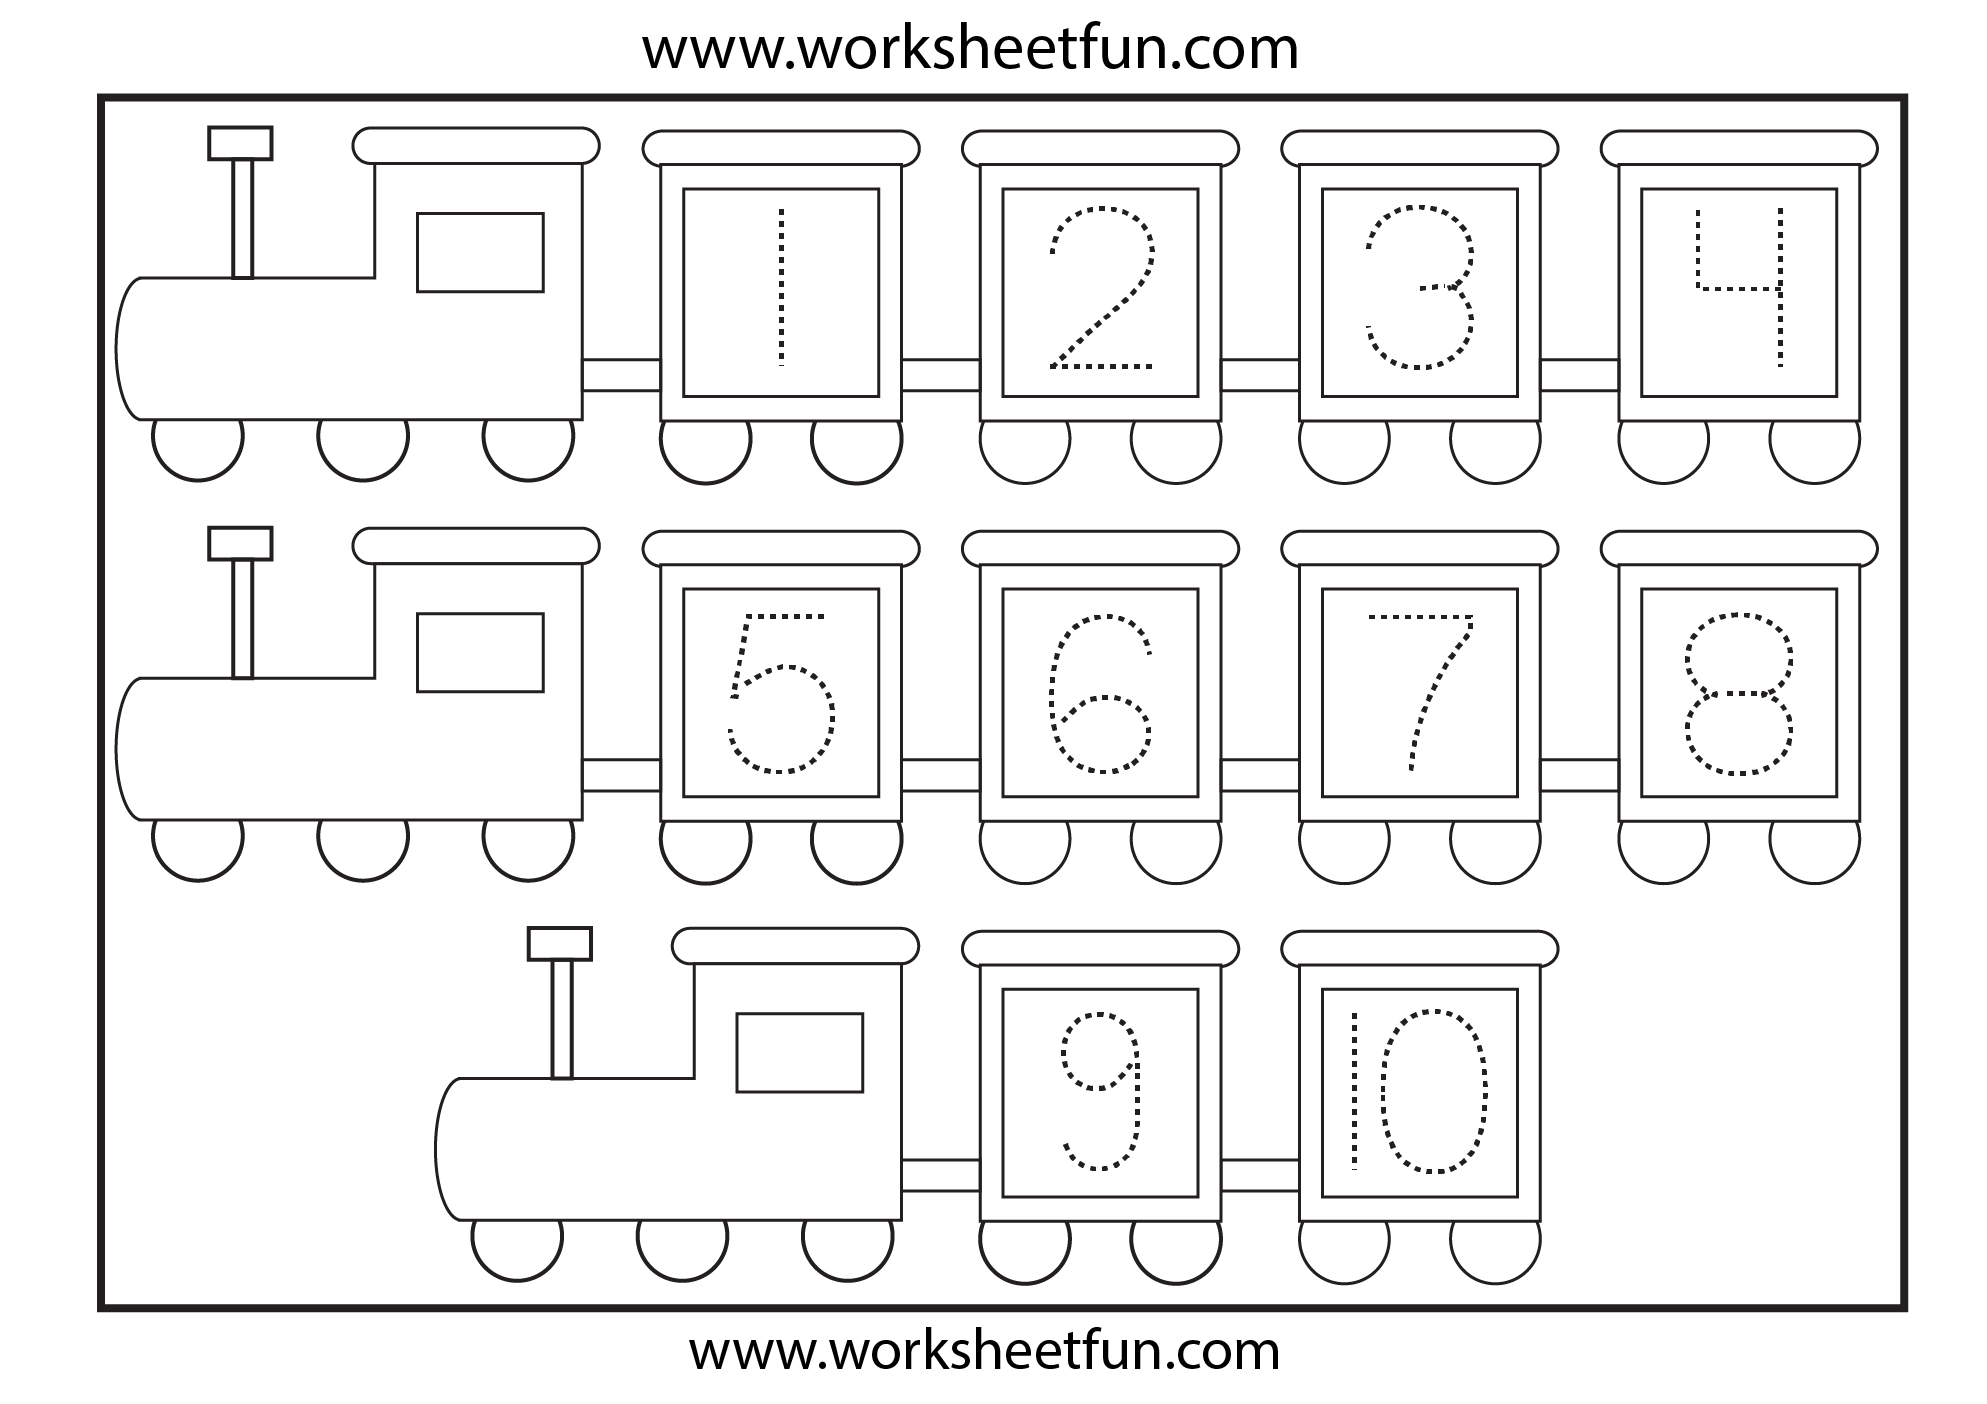 Printables Number Tracing Worksheets For Kindergarten 1000 images about number worksheets on pinterest to work student and year 2